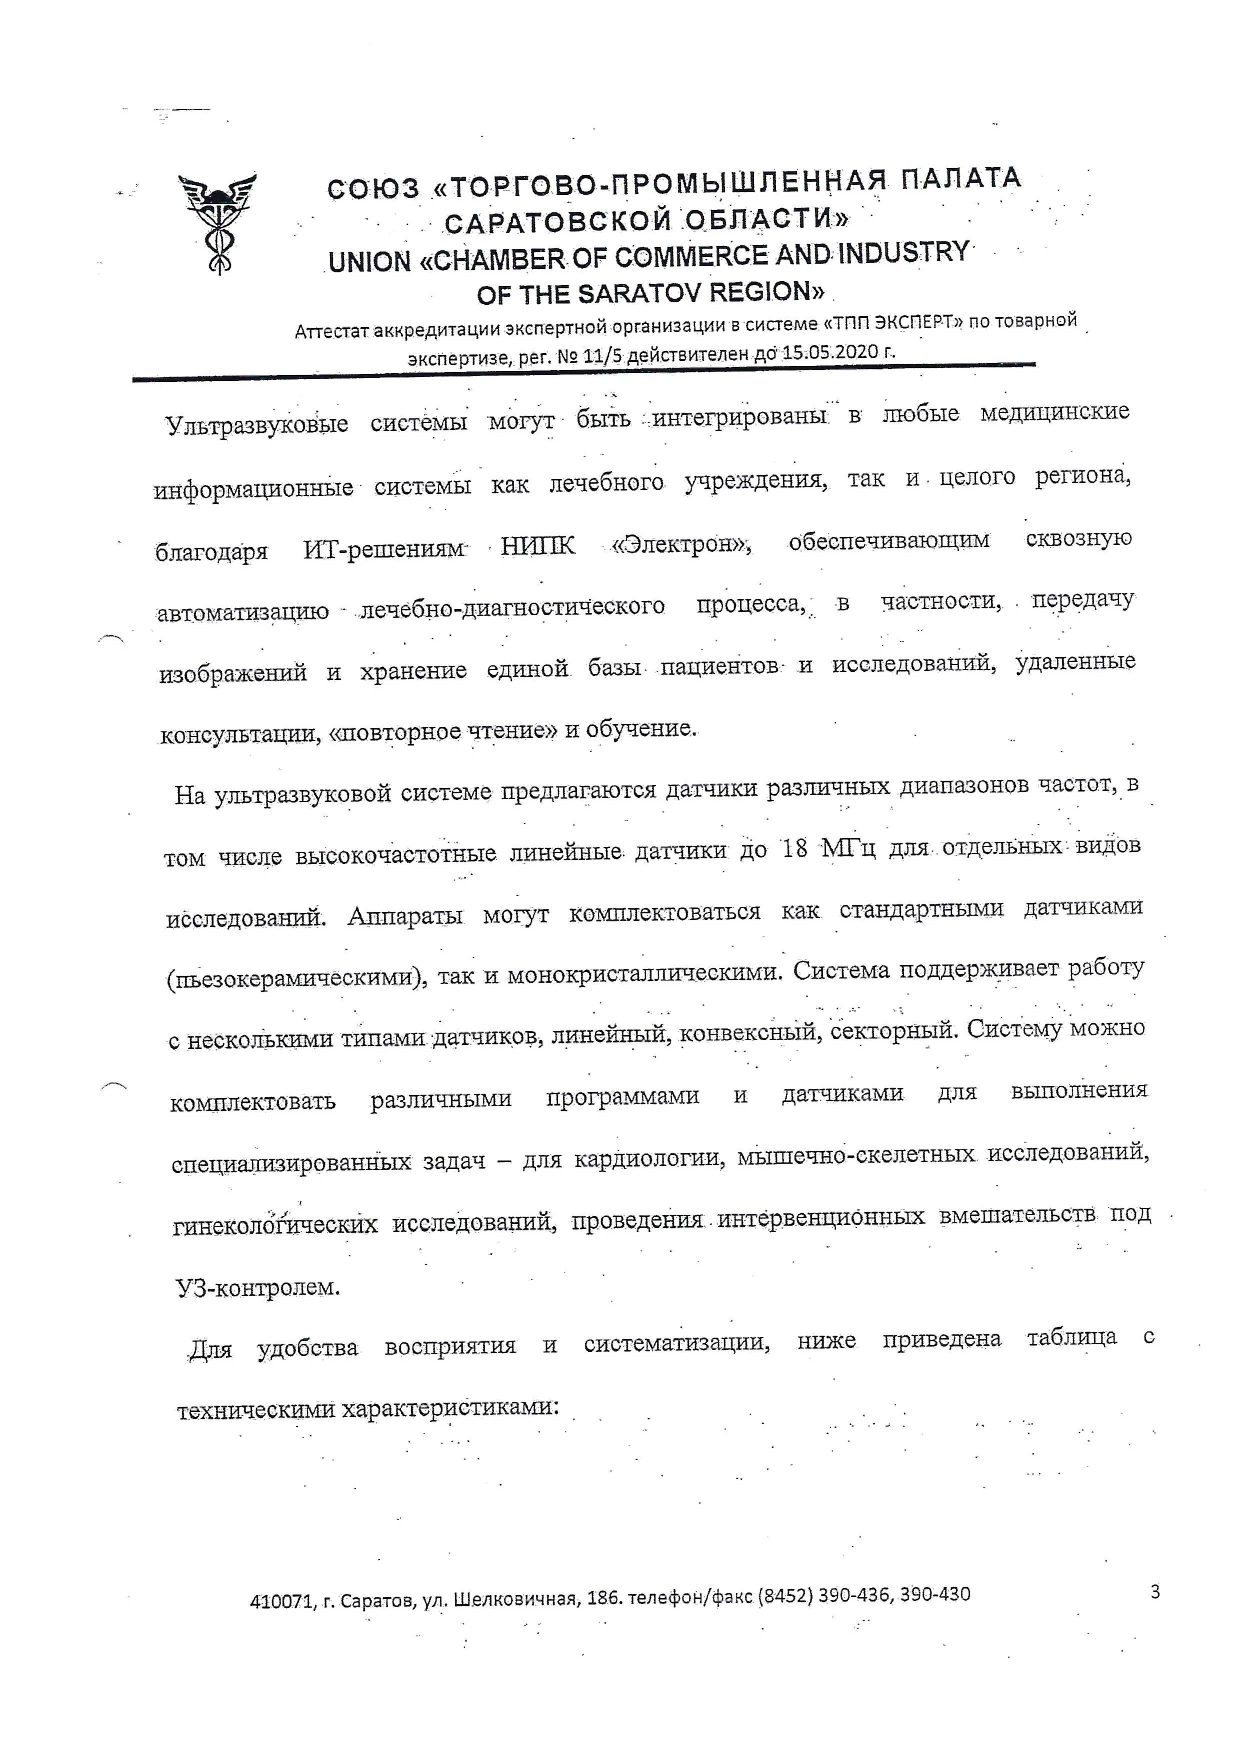 ТПП_page-0003